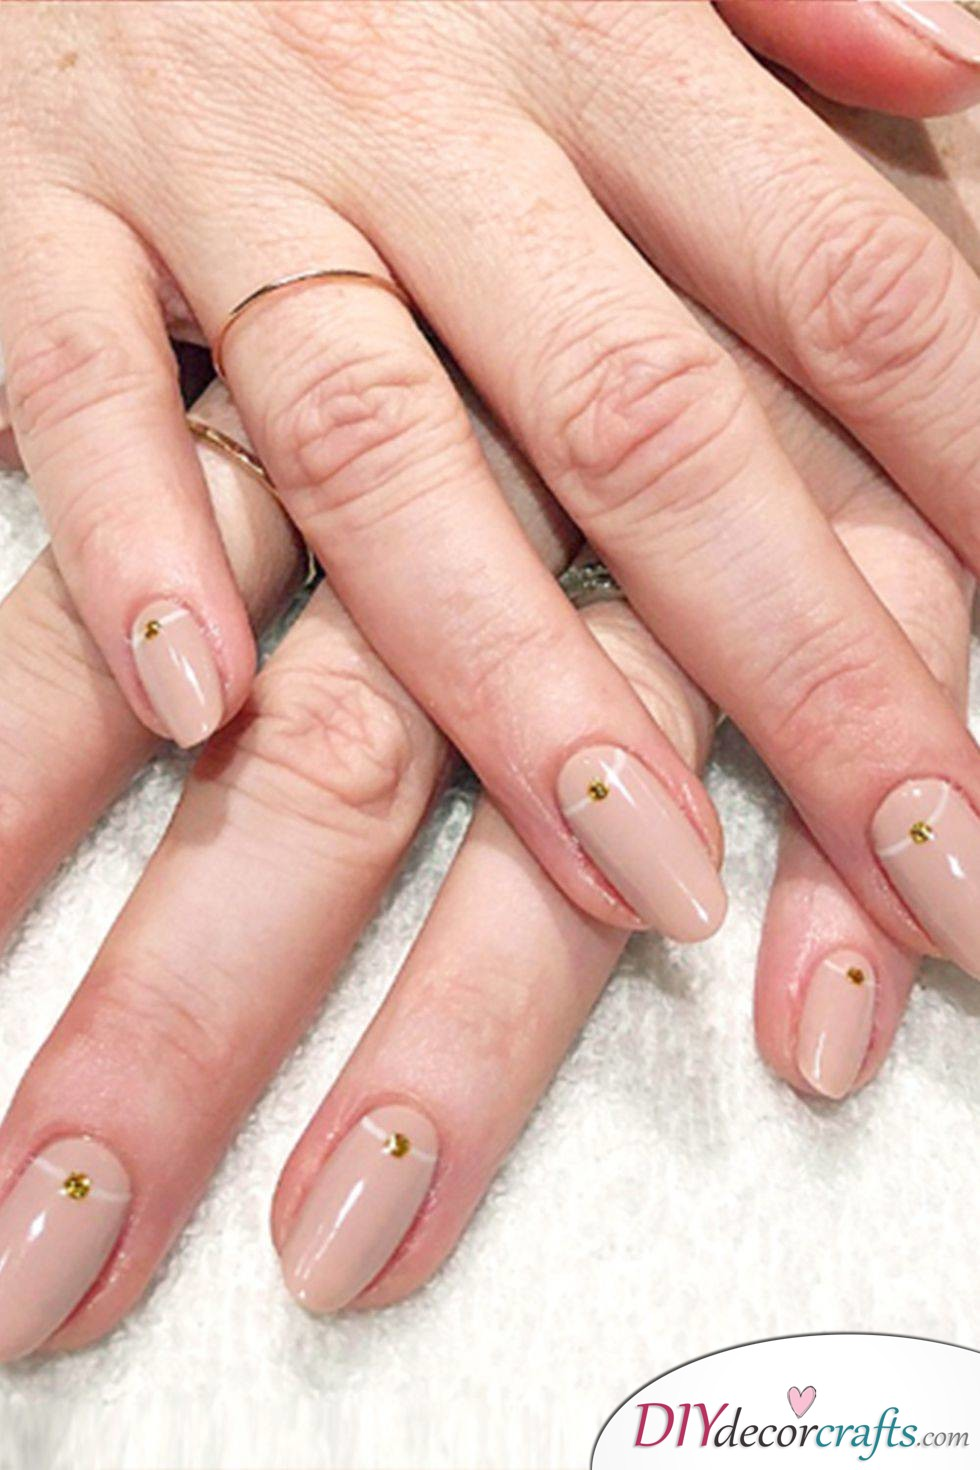 Cute And Naturalistic Nail Design, Subtly Dotted Nails